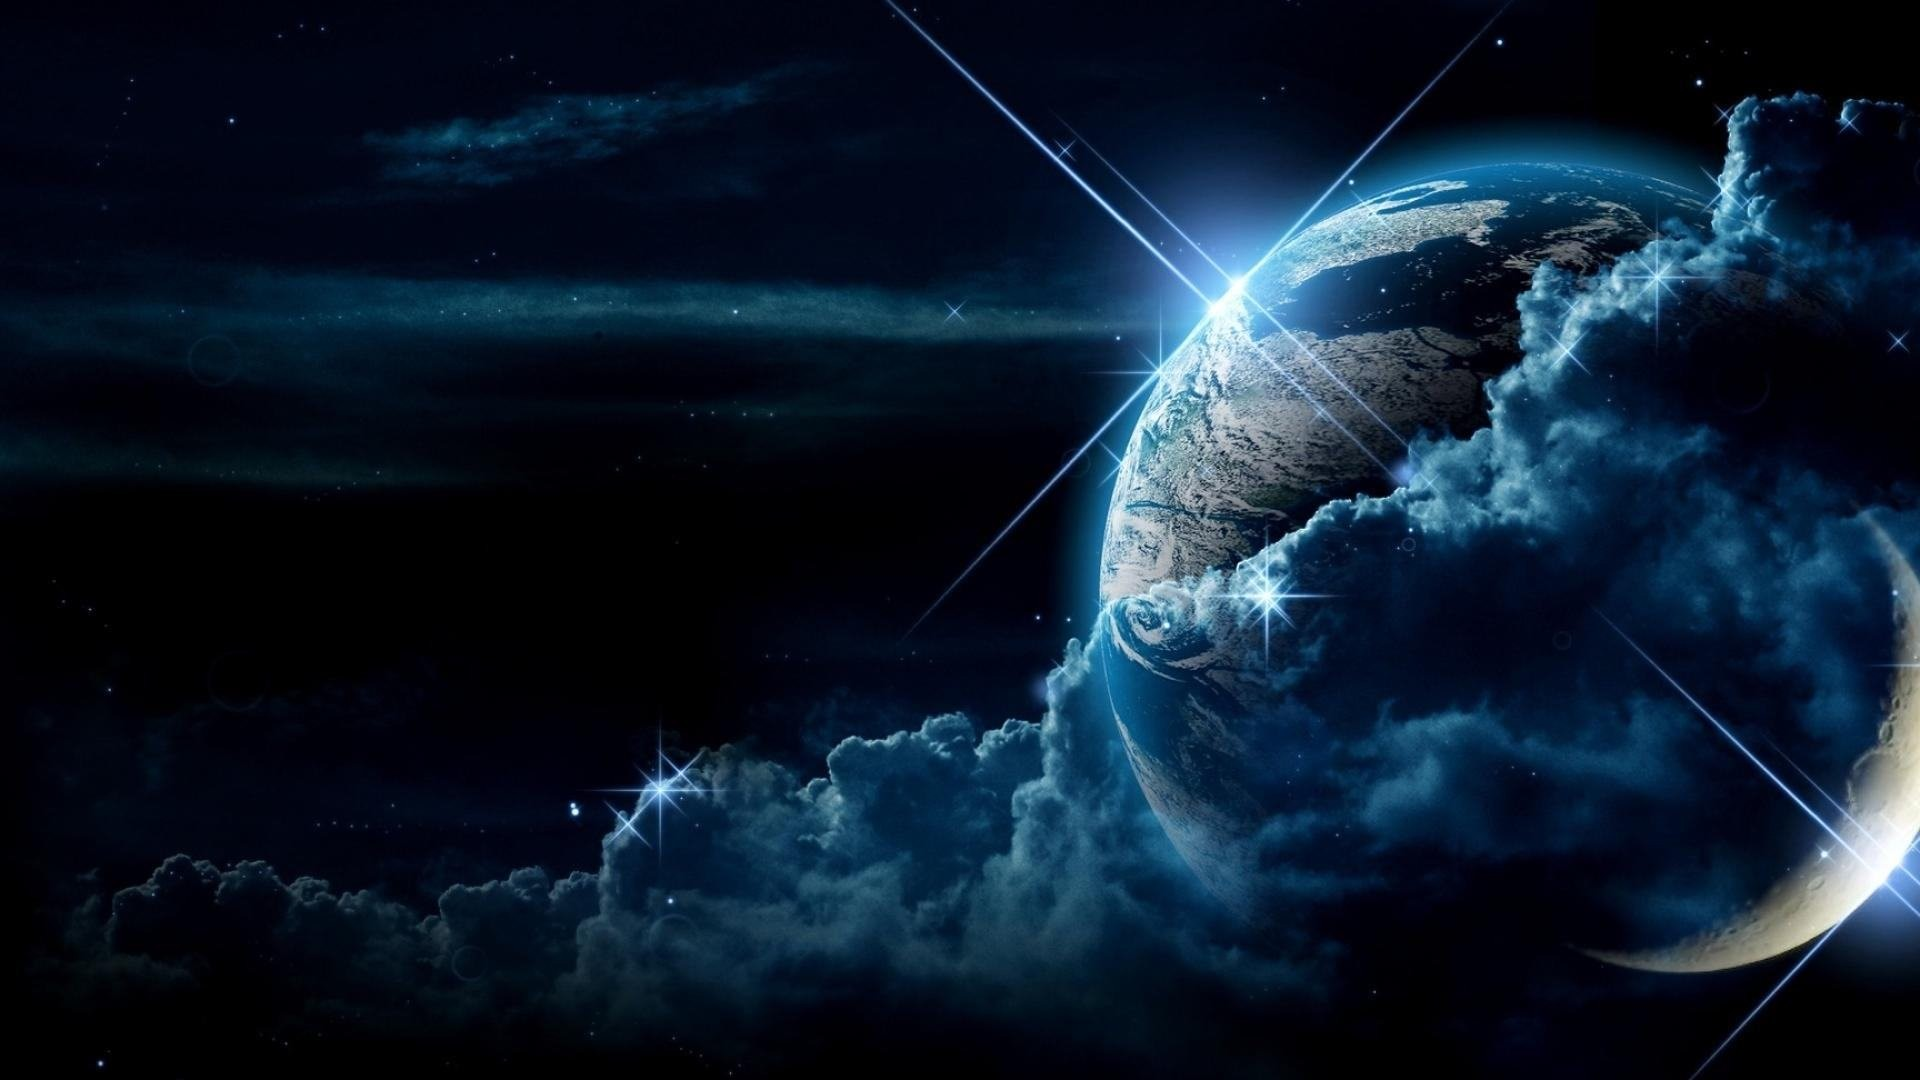 1920x1080 Collection of Best Space Backgrounds on HDWallpapers